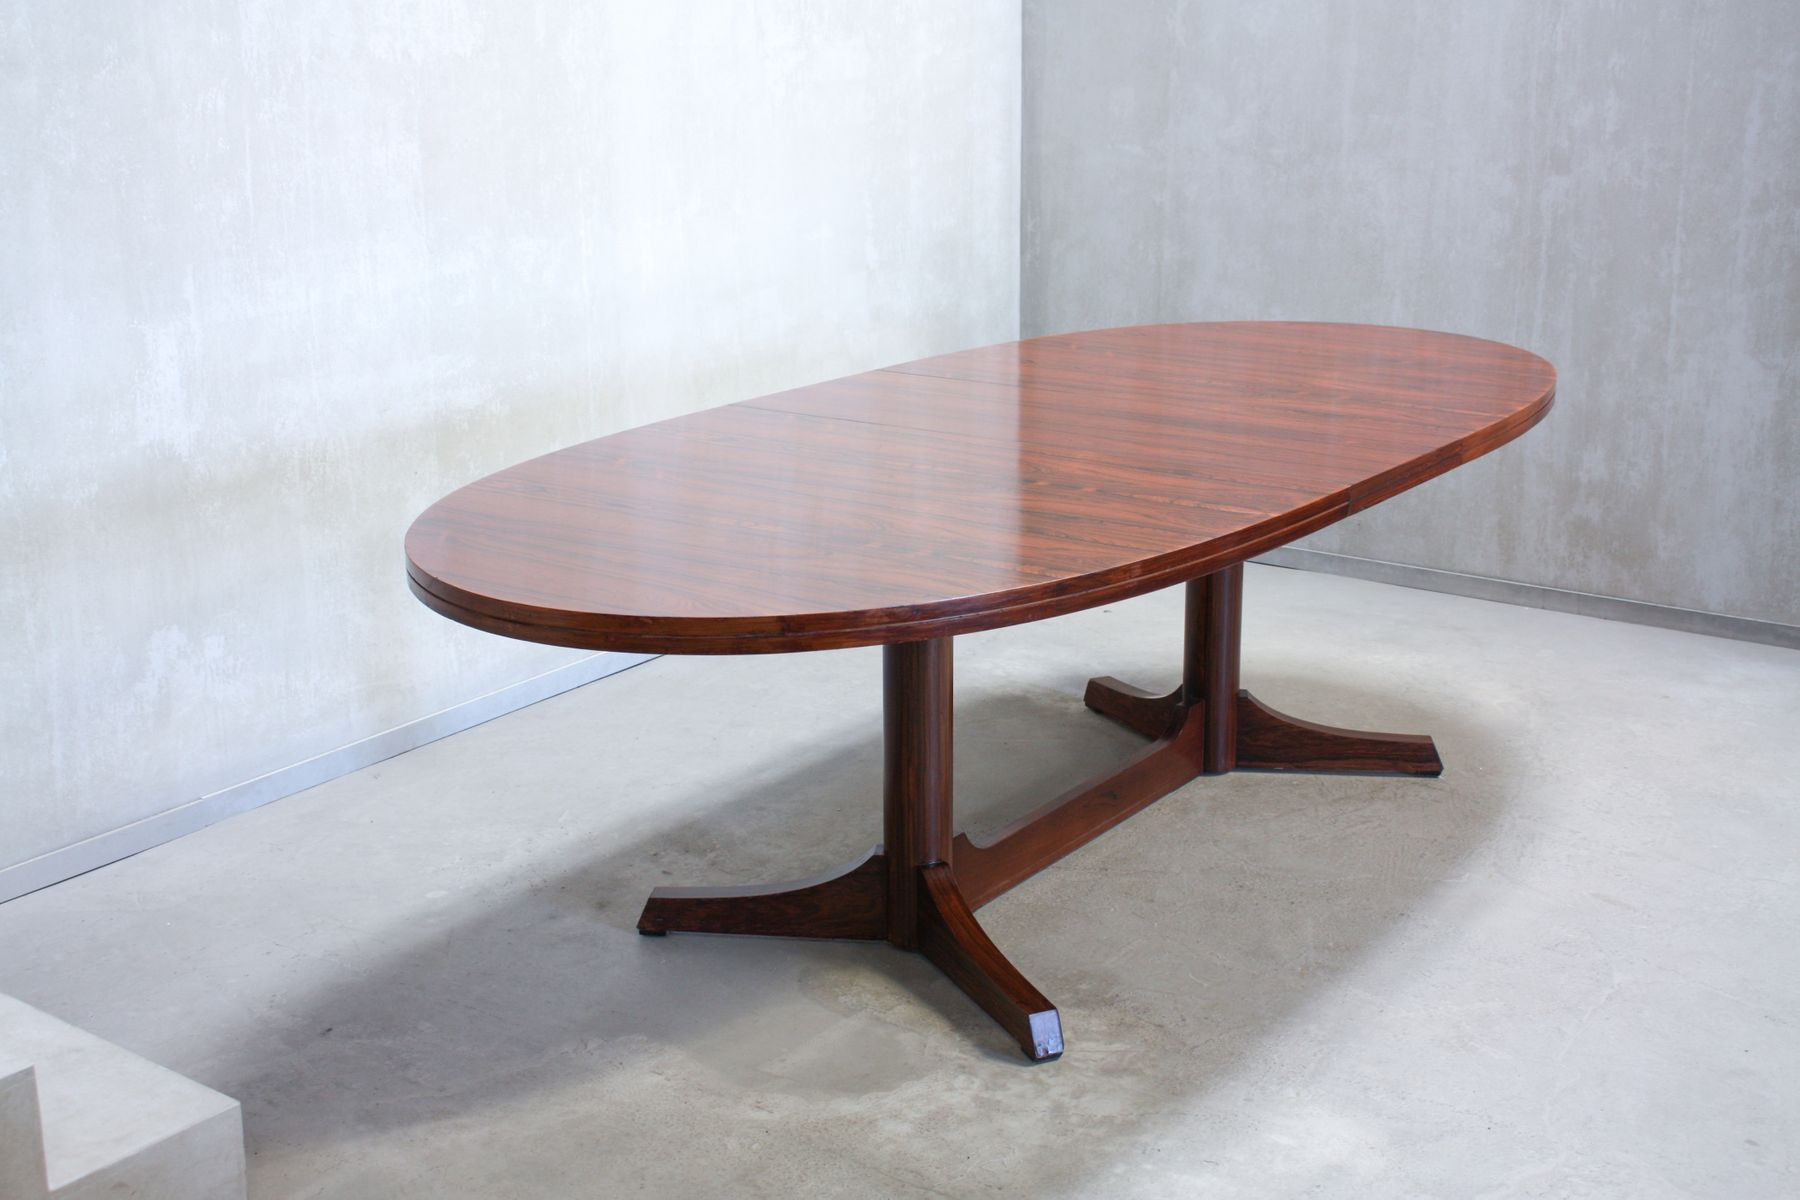 Oval Dining Table By Robert Heritage For Archie Shine, 1960s